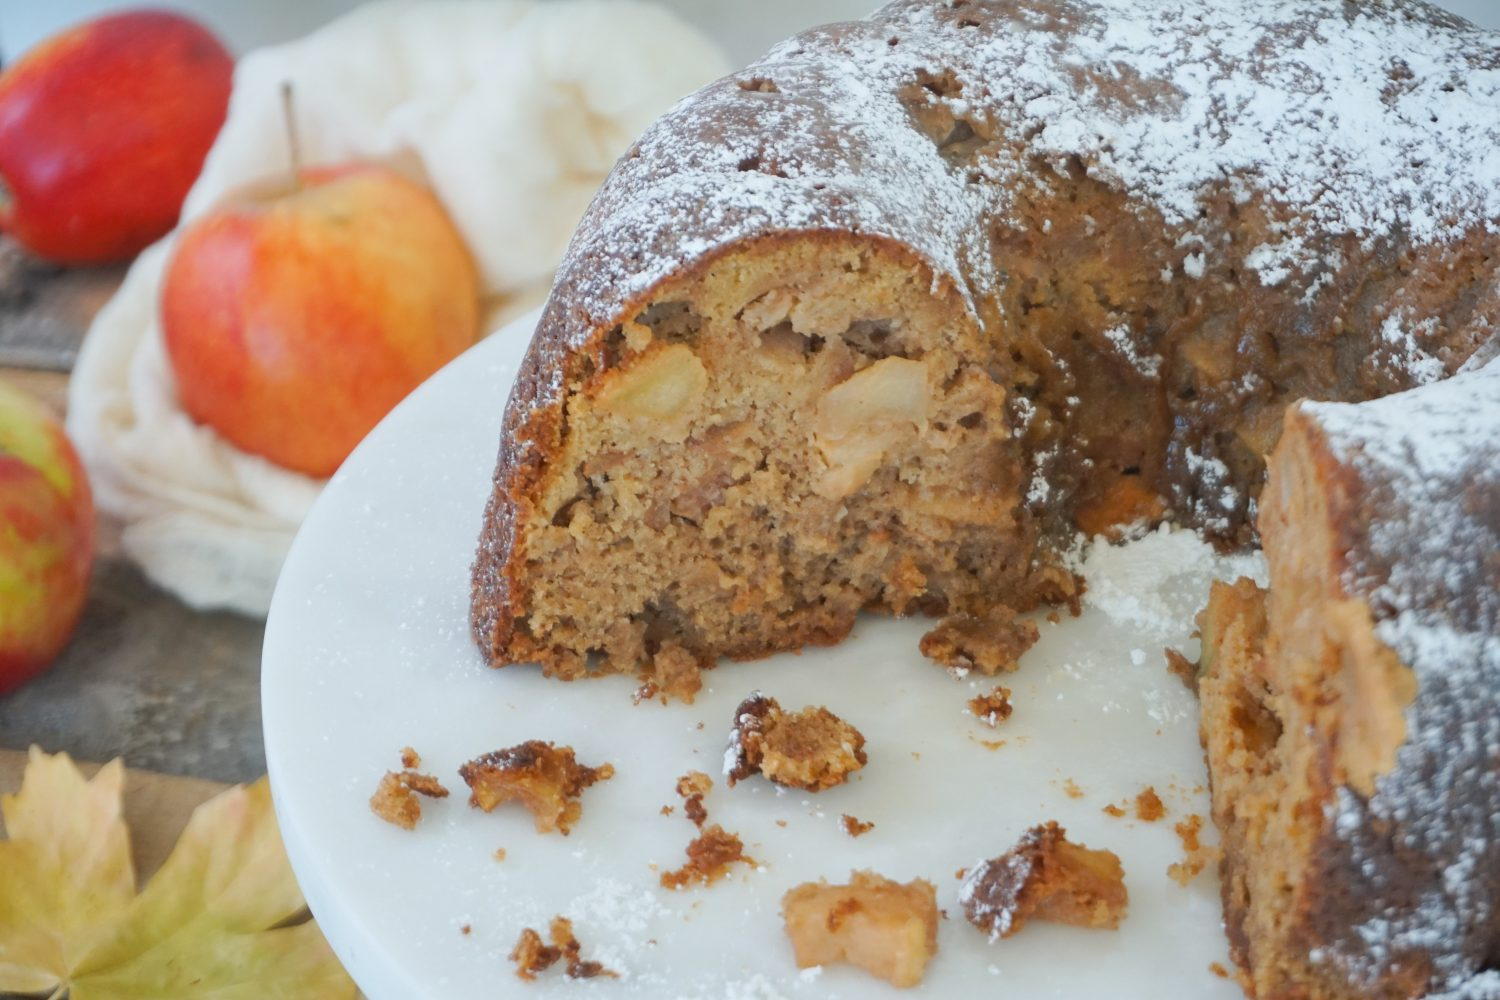 Apple cake showing moist interior with apples in background